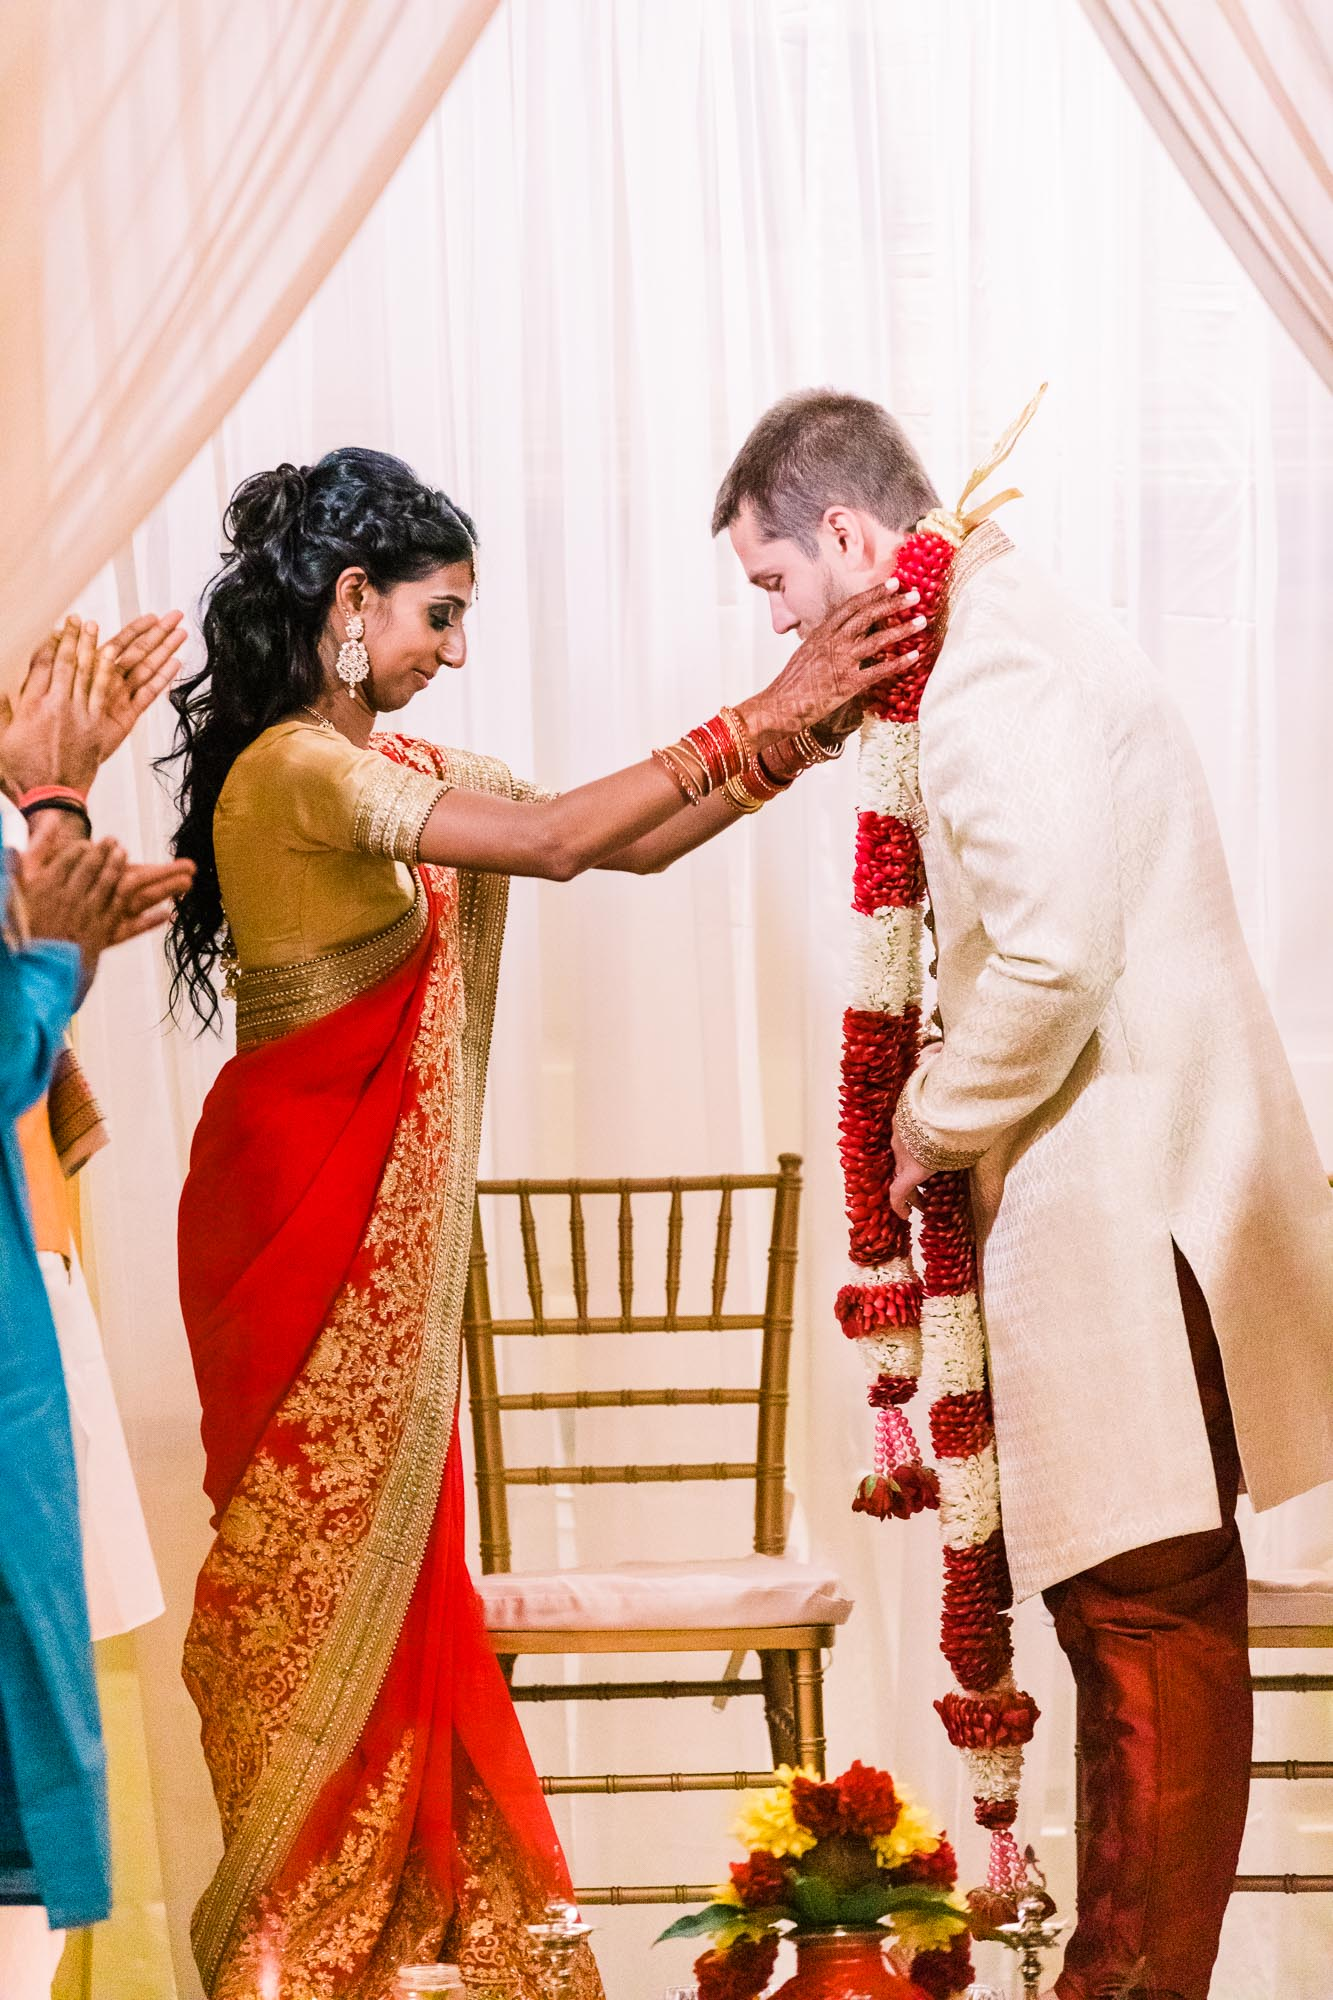 Scranton_Radisson_Hindu_Wedding-8906.jpg